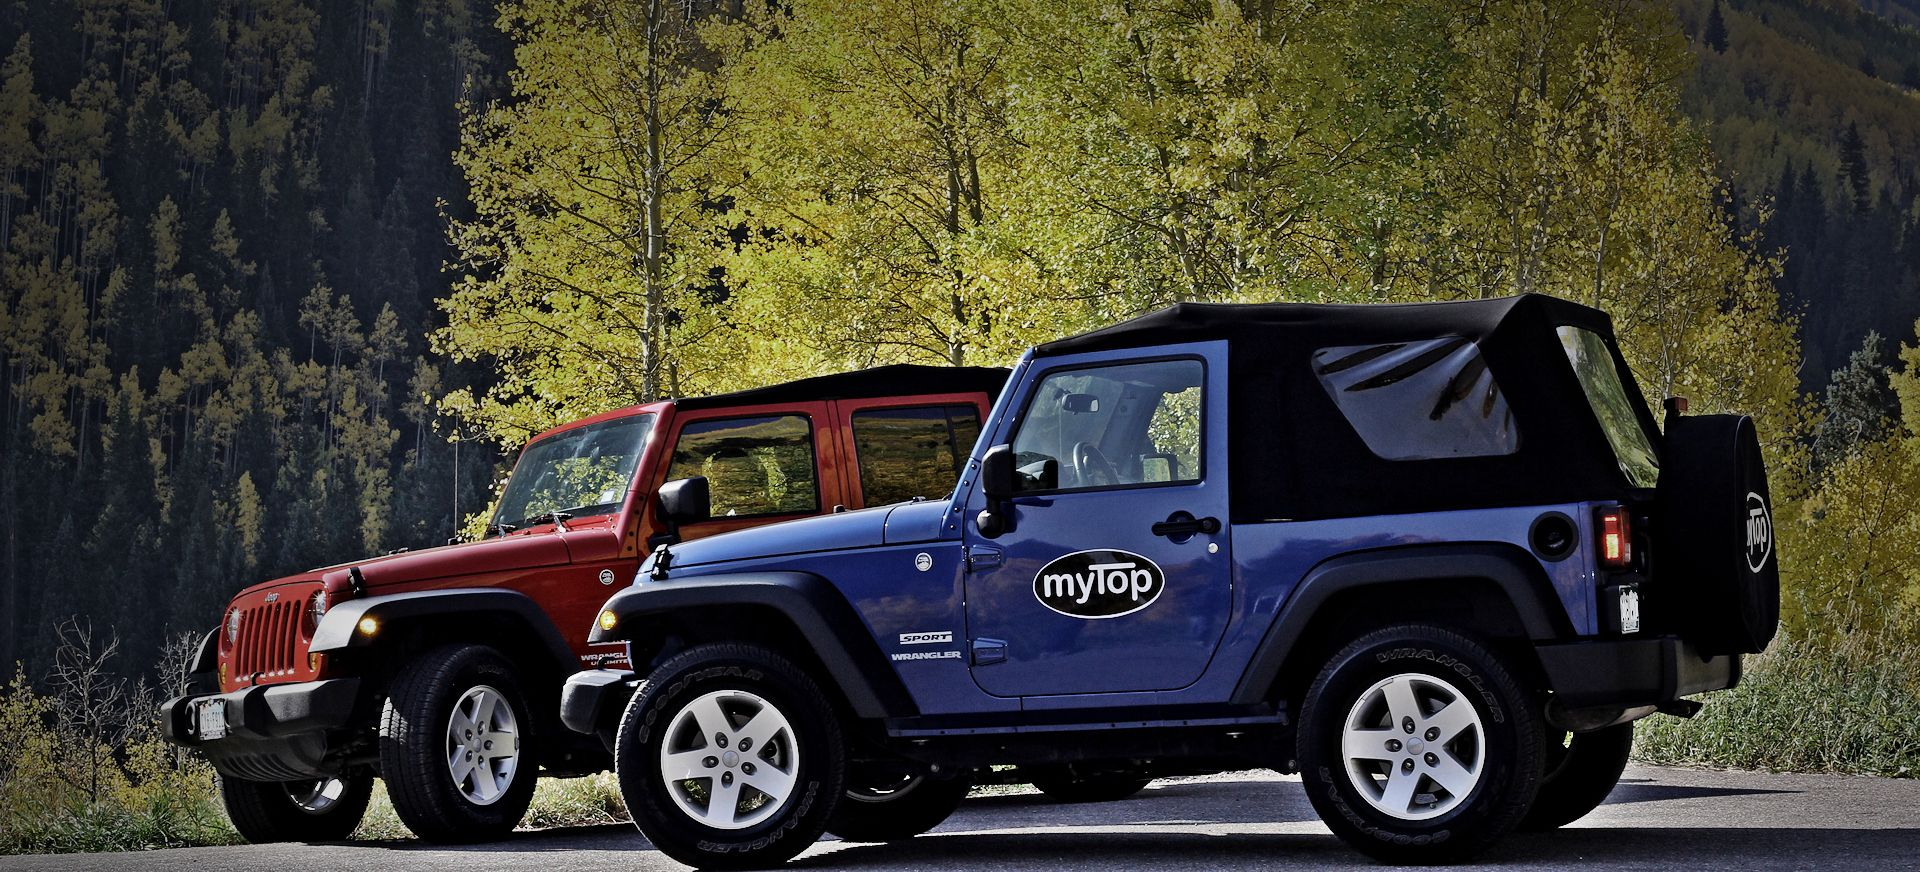 Mytop Is An All Electric Convertible Soft Top For The Jeep Wrangler And Unlimited World S First